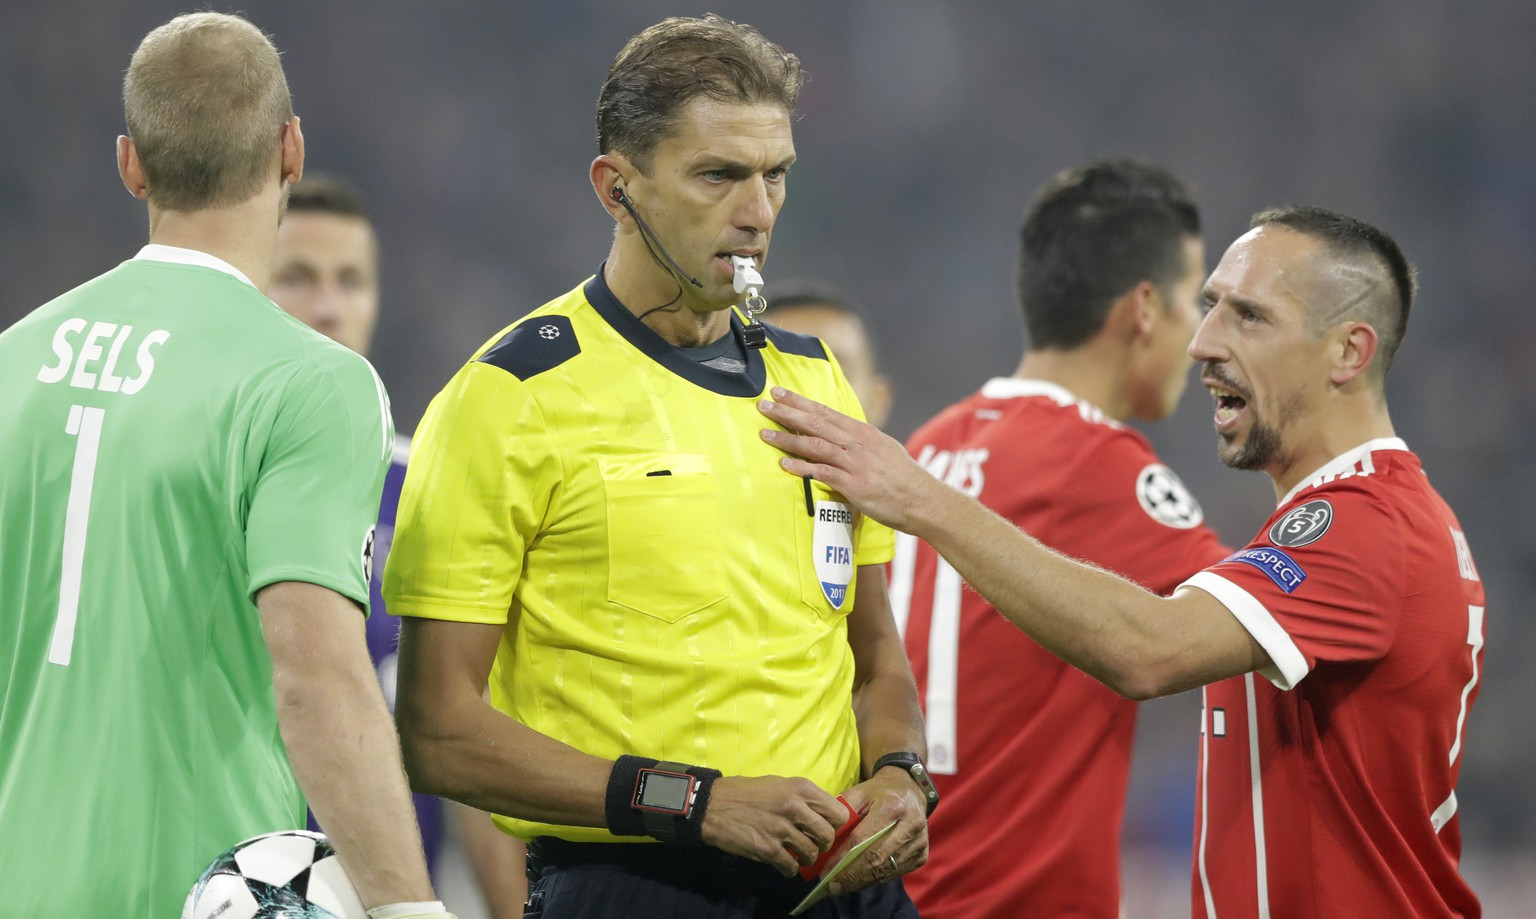 Bayern's Franck Ribery, right, speaks with the referee during a Champions League Group B soccer match between FC Bayern Munich and RSC Anderlecht in Munich, Germany, Tuesday, Sept. 12, 2017. (AP Photo/Matthias Schrader)